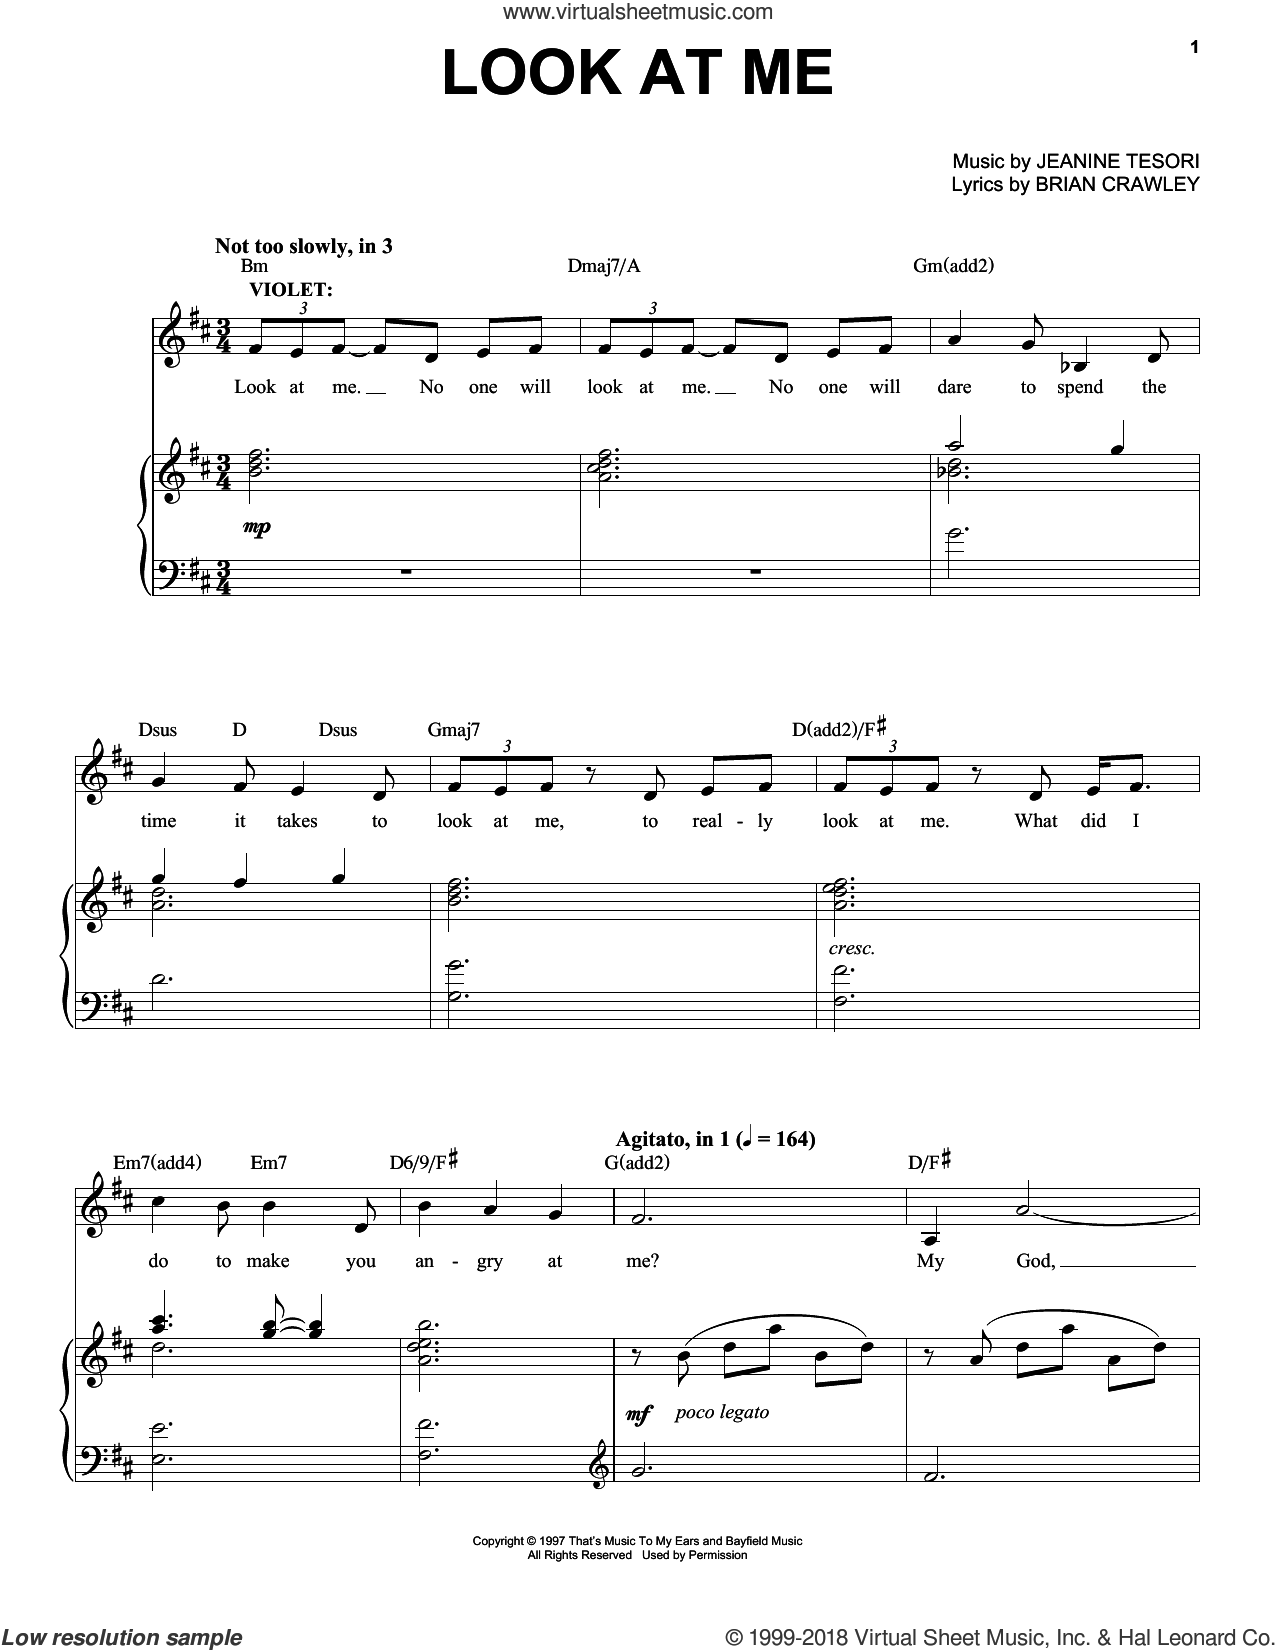 Look At Me sheet music for voice and piano by Jeanine Tesori. Score Image Preview.